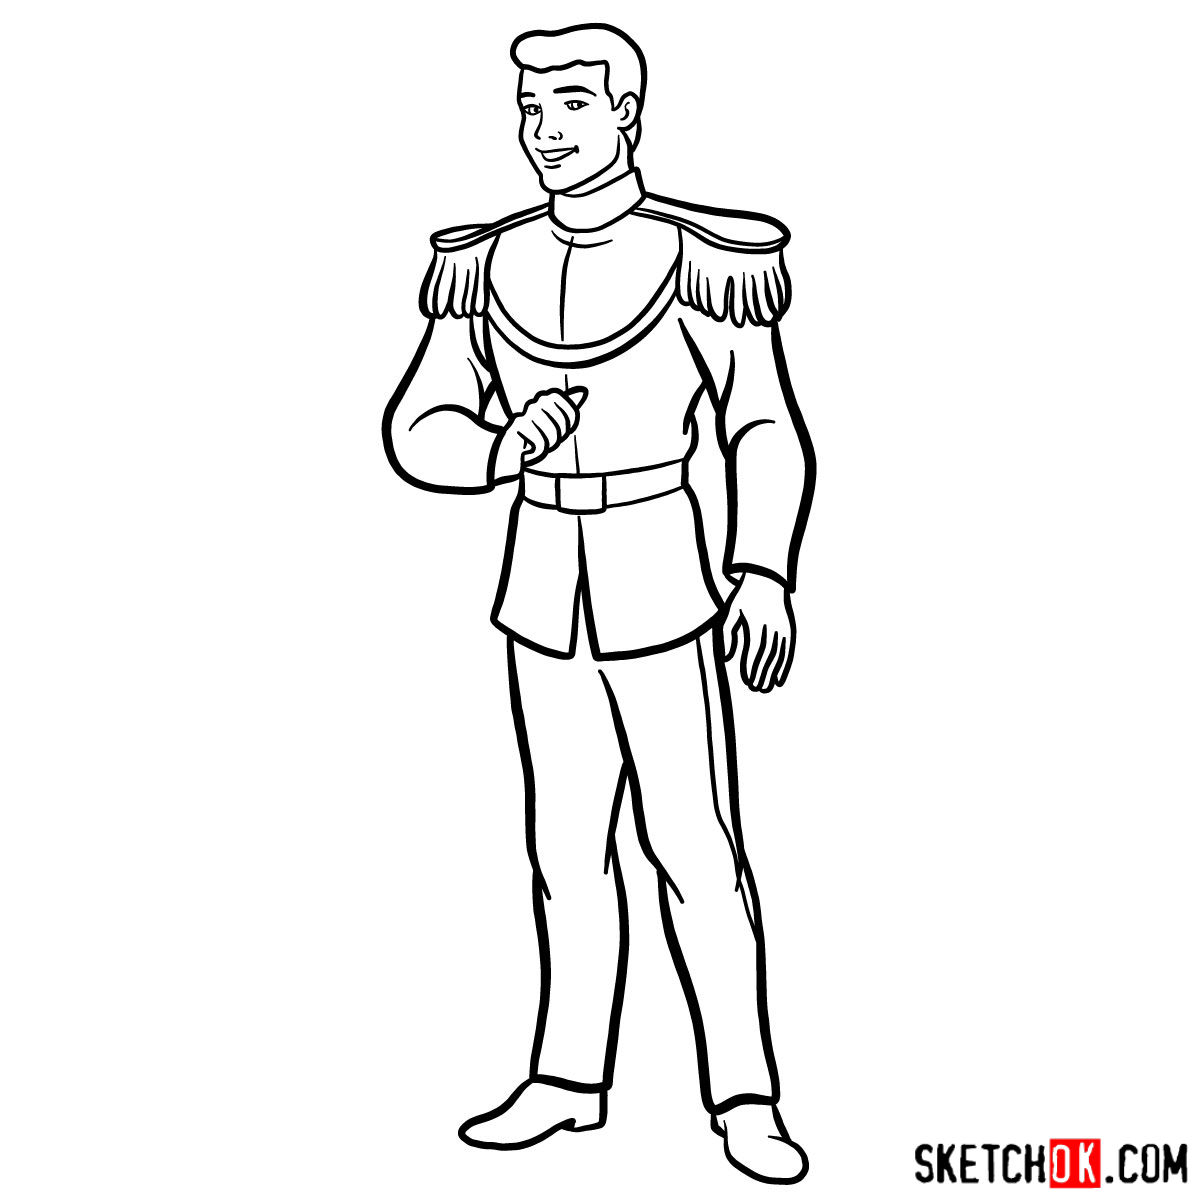 How to draw Prince Charming - step 12